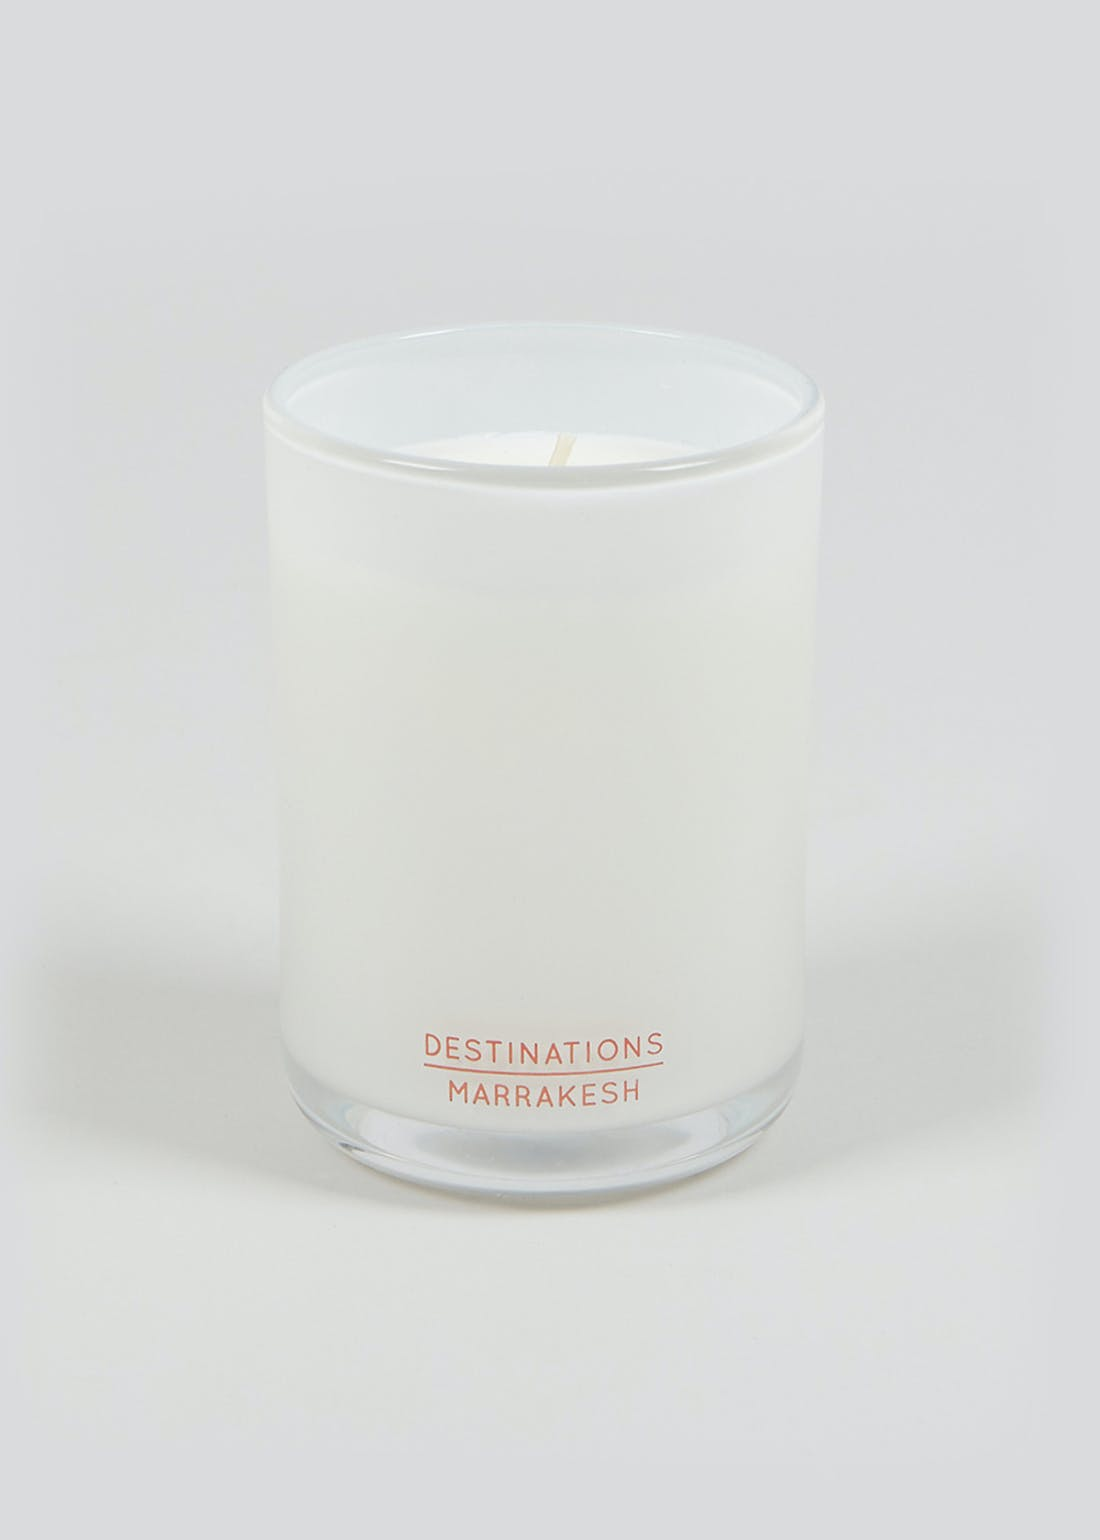 Pomegranate & Raspberry Marrakech Destinations Candle (11cm x 8cm)